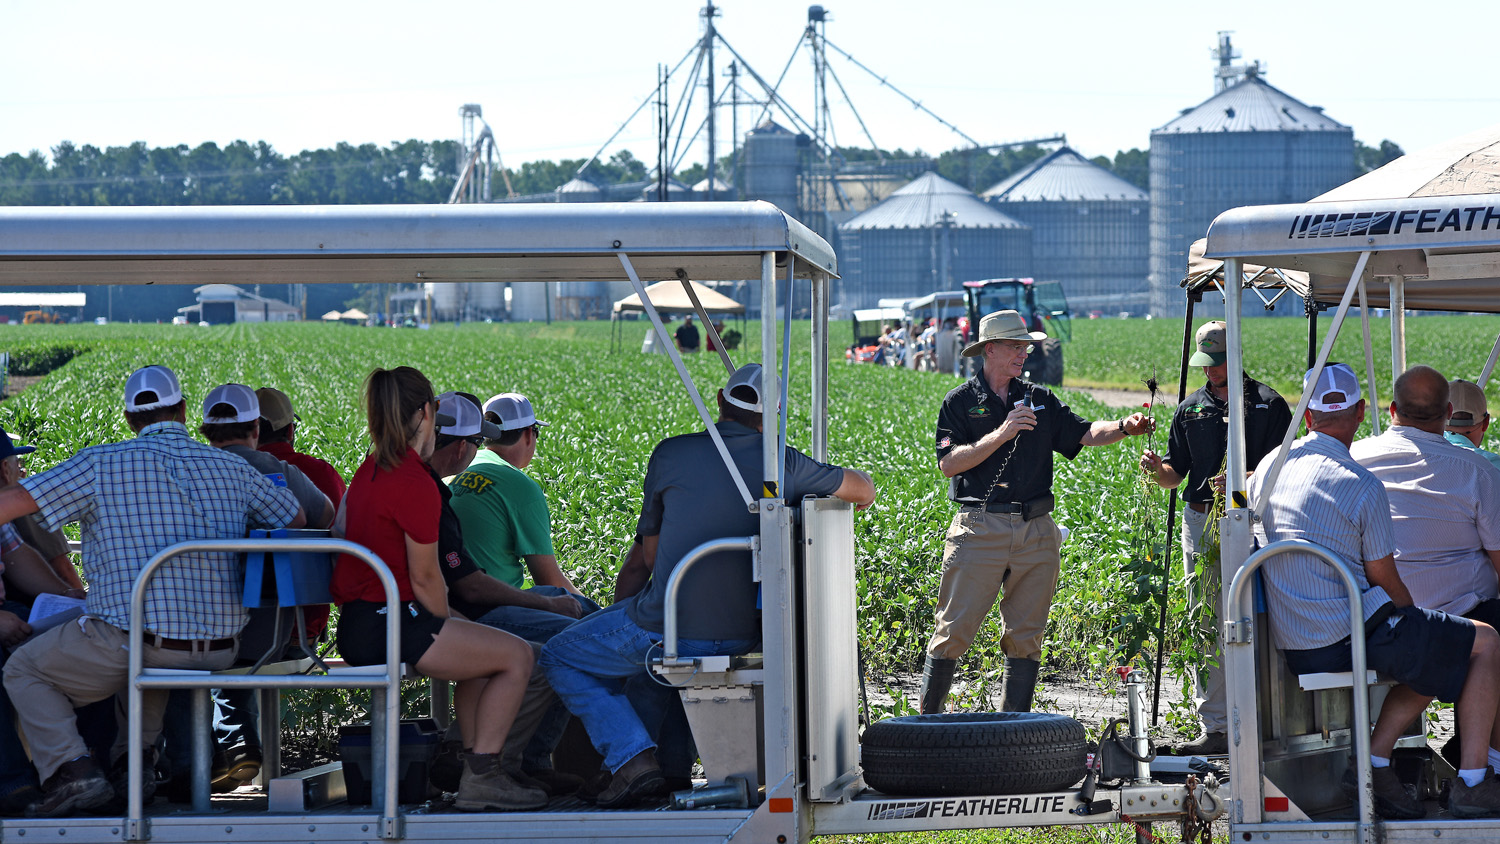 Extension specialist giving a field demonstration in a soybean field while onlookers in a tram observe.